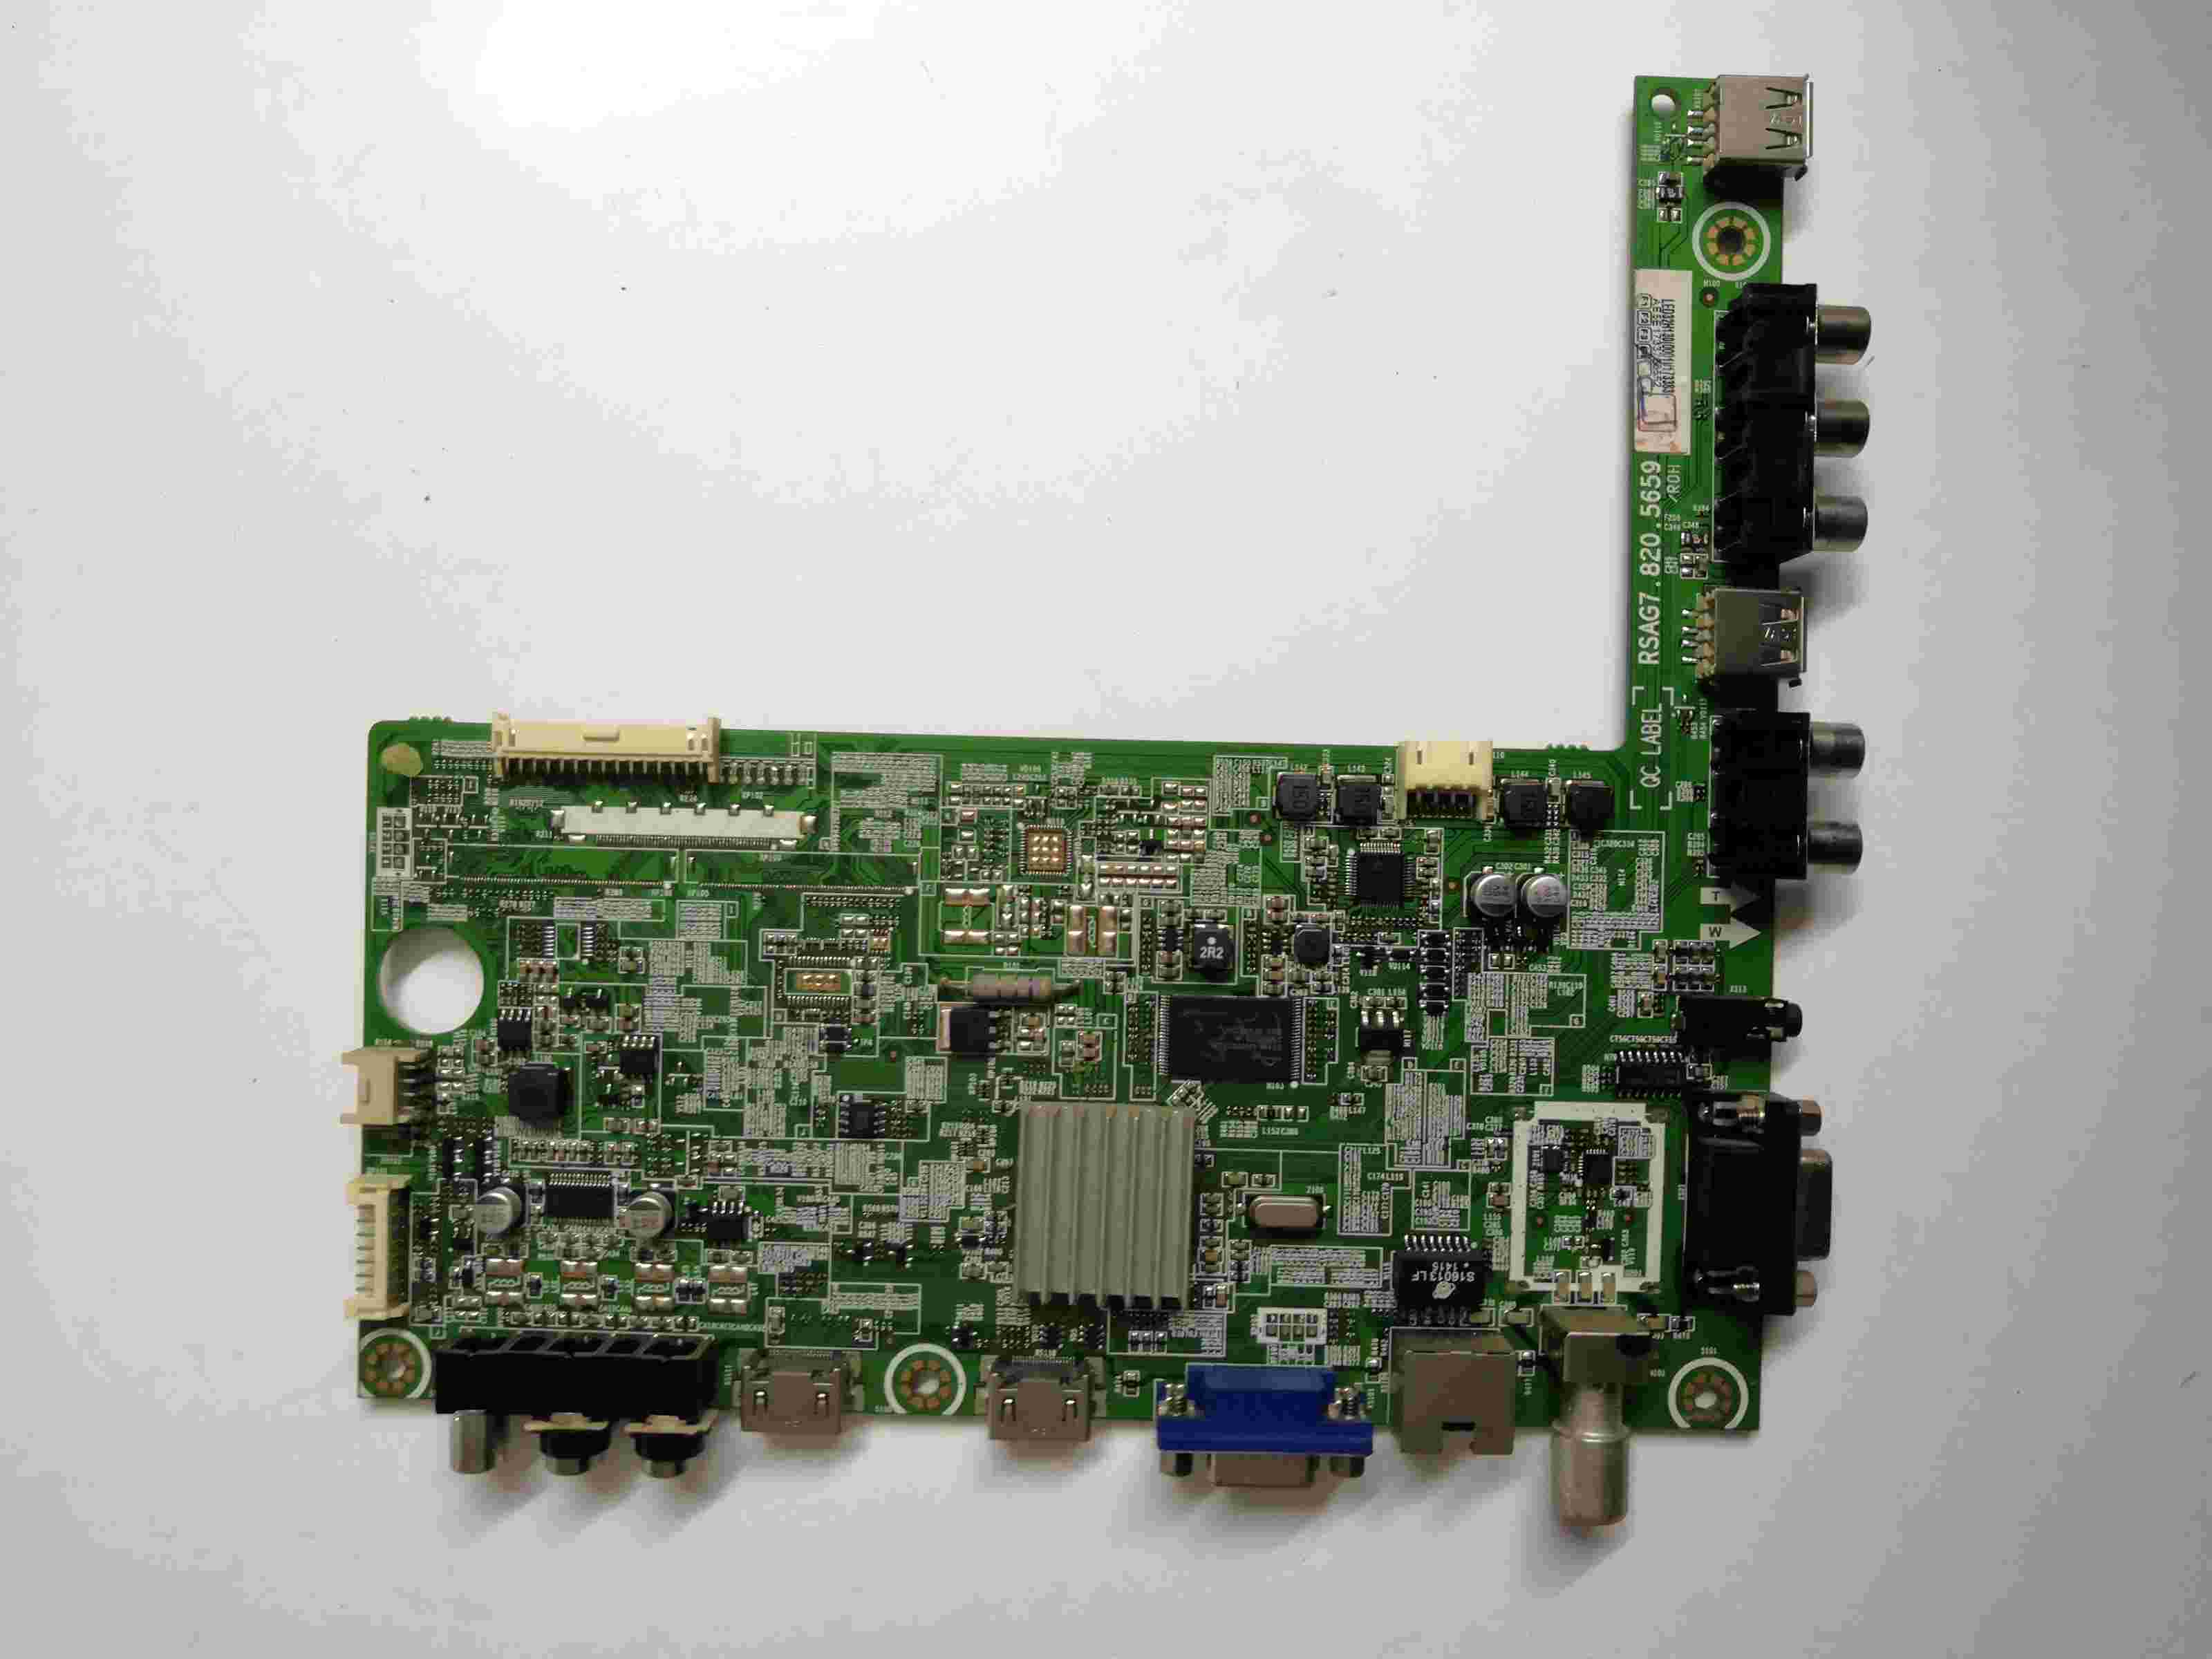 Main Board Power Board Circuit Logic Board Constant Current Board Led 32h130 Motherboard Rsag7.820.5659 Screen He315gh-e88 Consumer Electronics